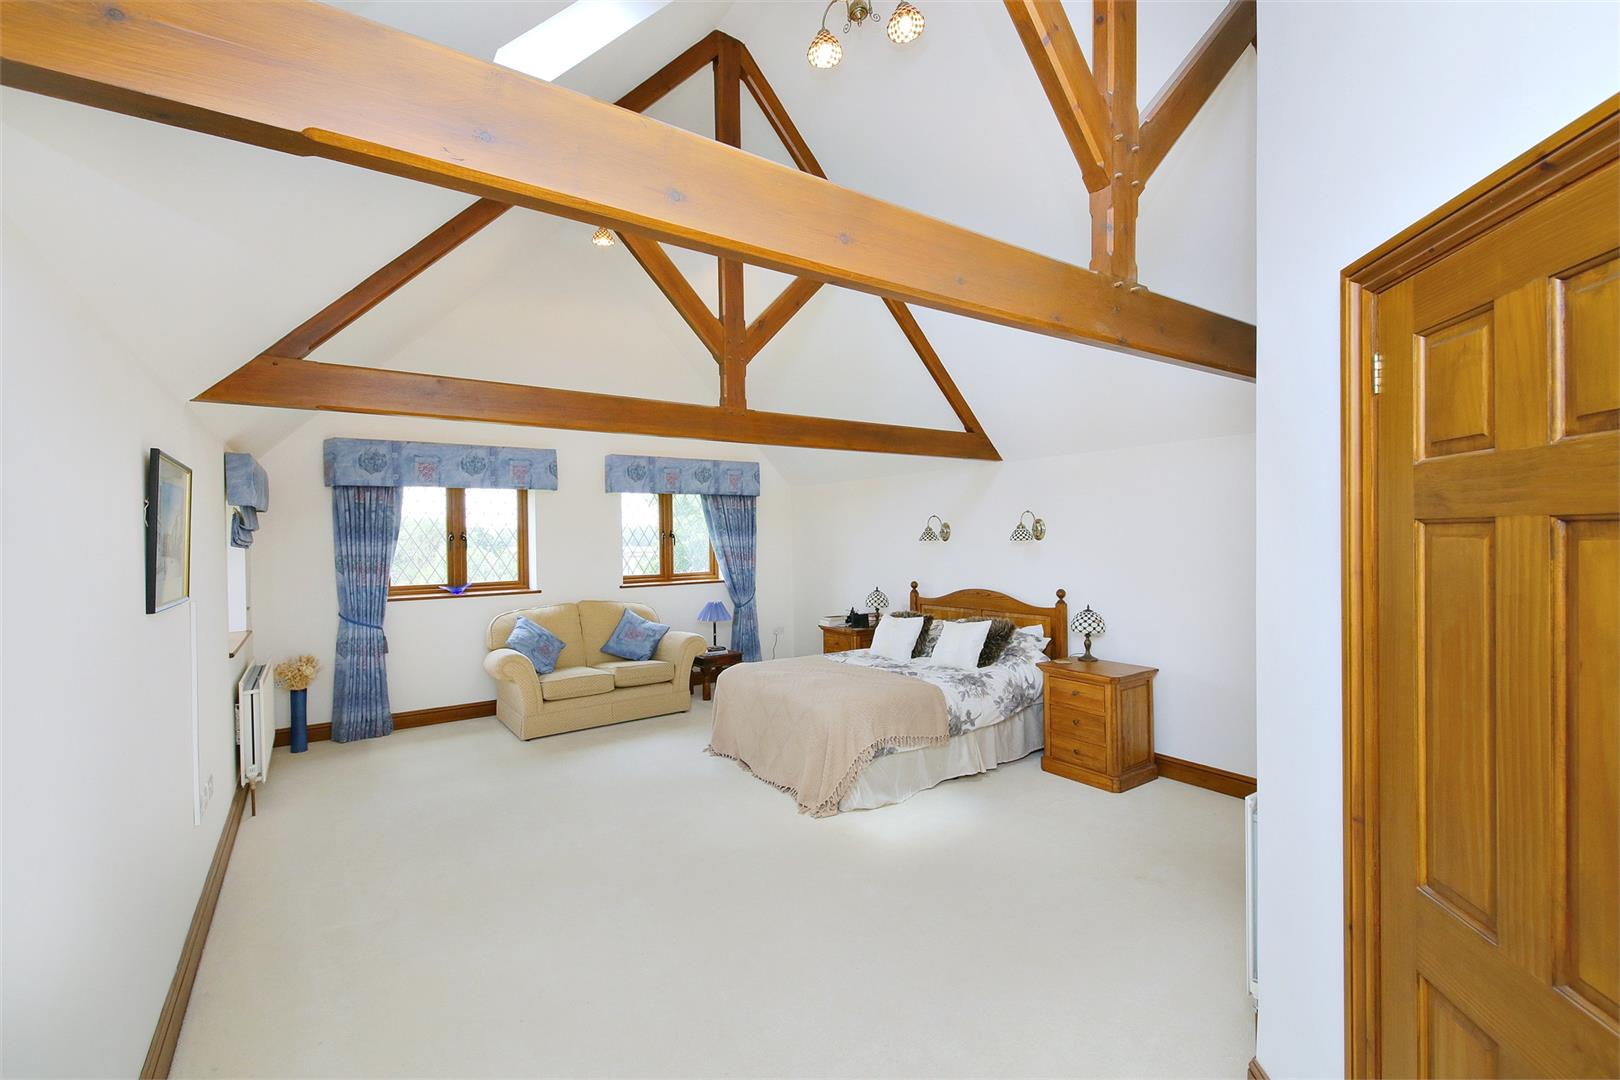 6 bed to rent in Elstree - (Property Image 5)